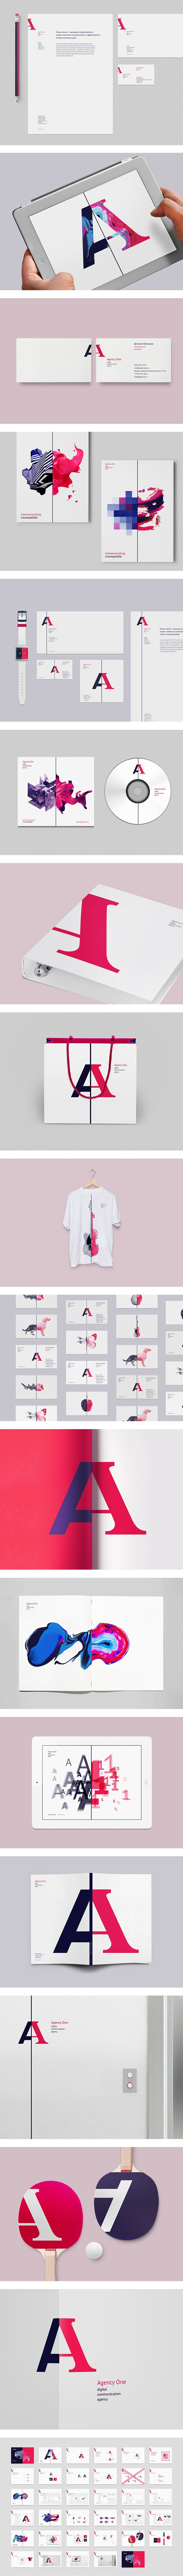 Agency One   |   Vova Lifanov | #stationary #corporate #design #corporatedesign #identity #branding #marketing < repinned by www.BlickeDeeler.de | Take a look at www.LogoGestaltung-Hamburg.de..